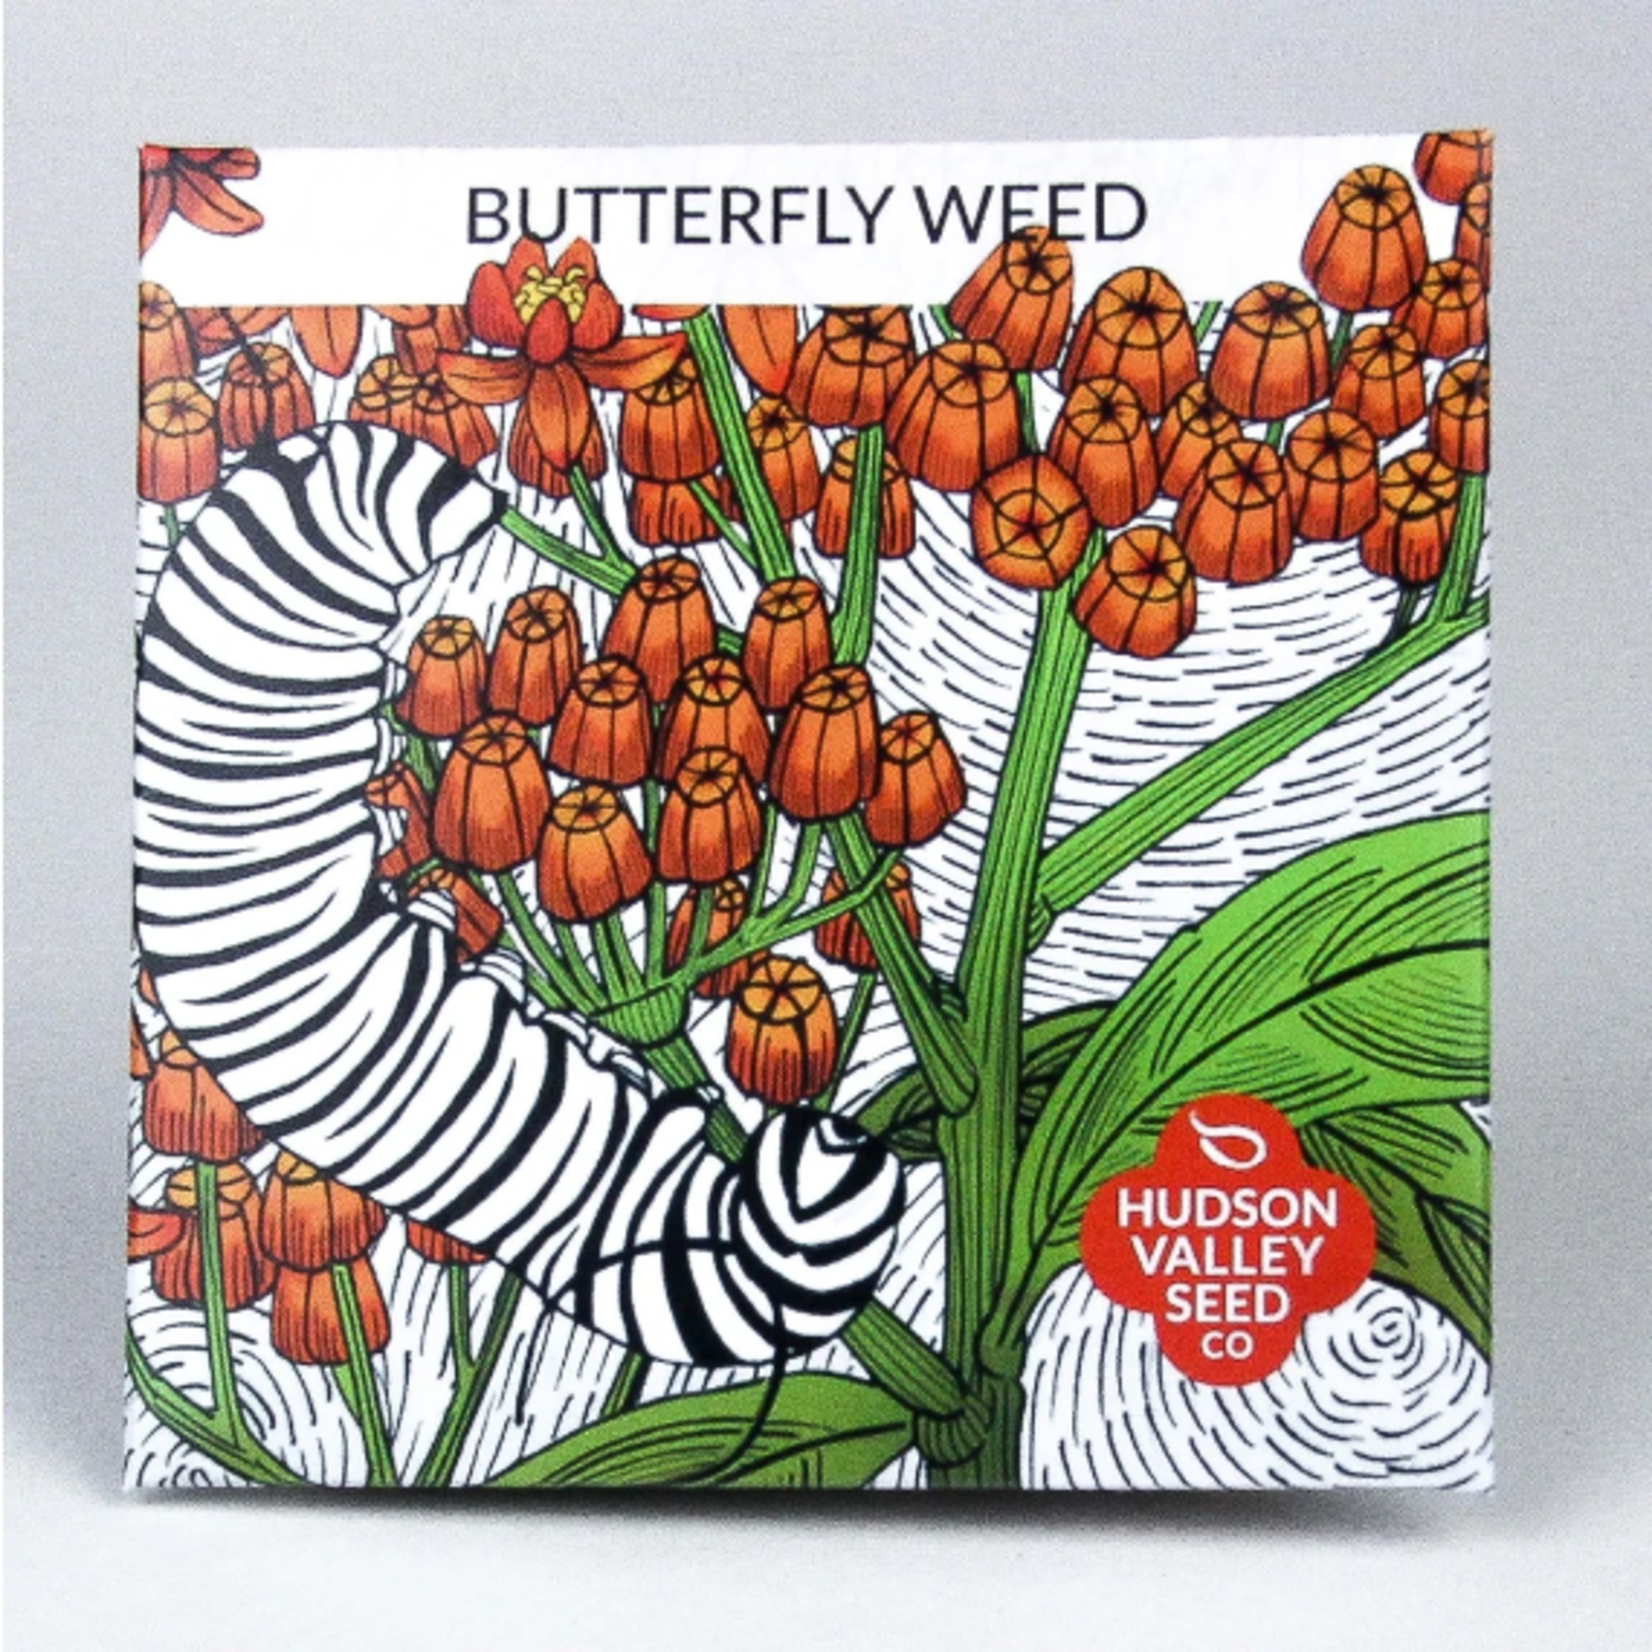 Hudson Valley Seeds Butterfly Weed Seeds